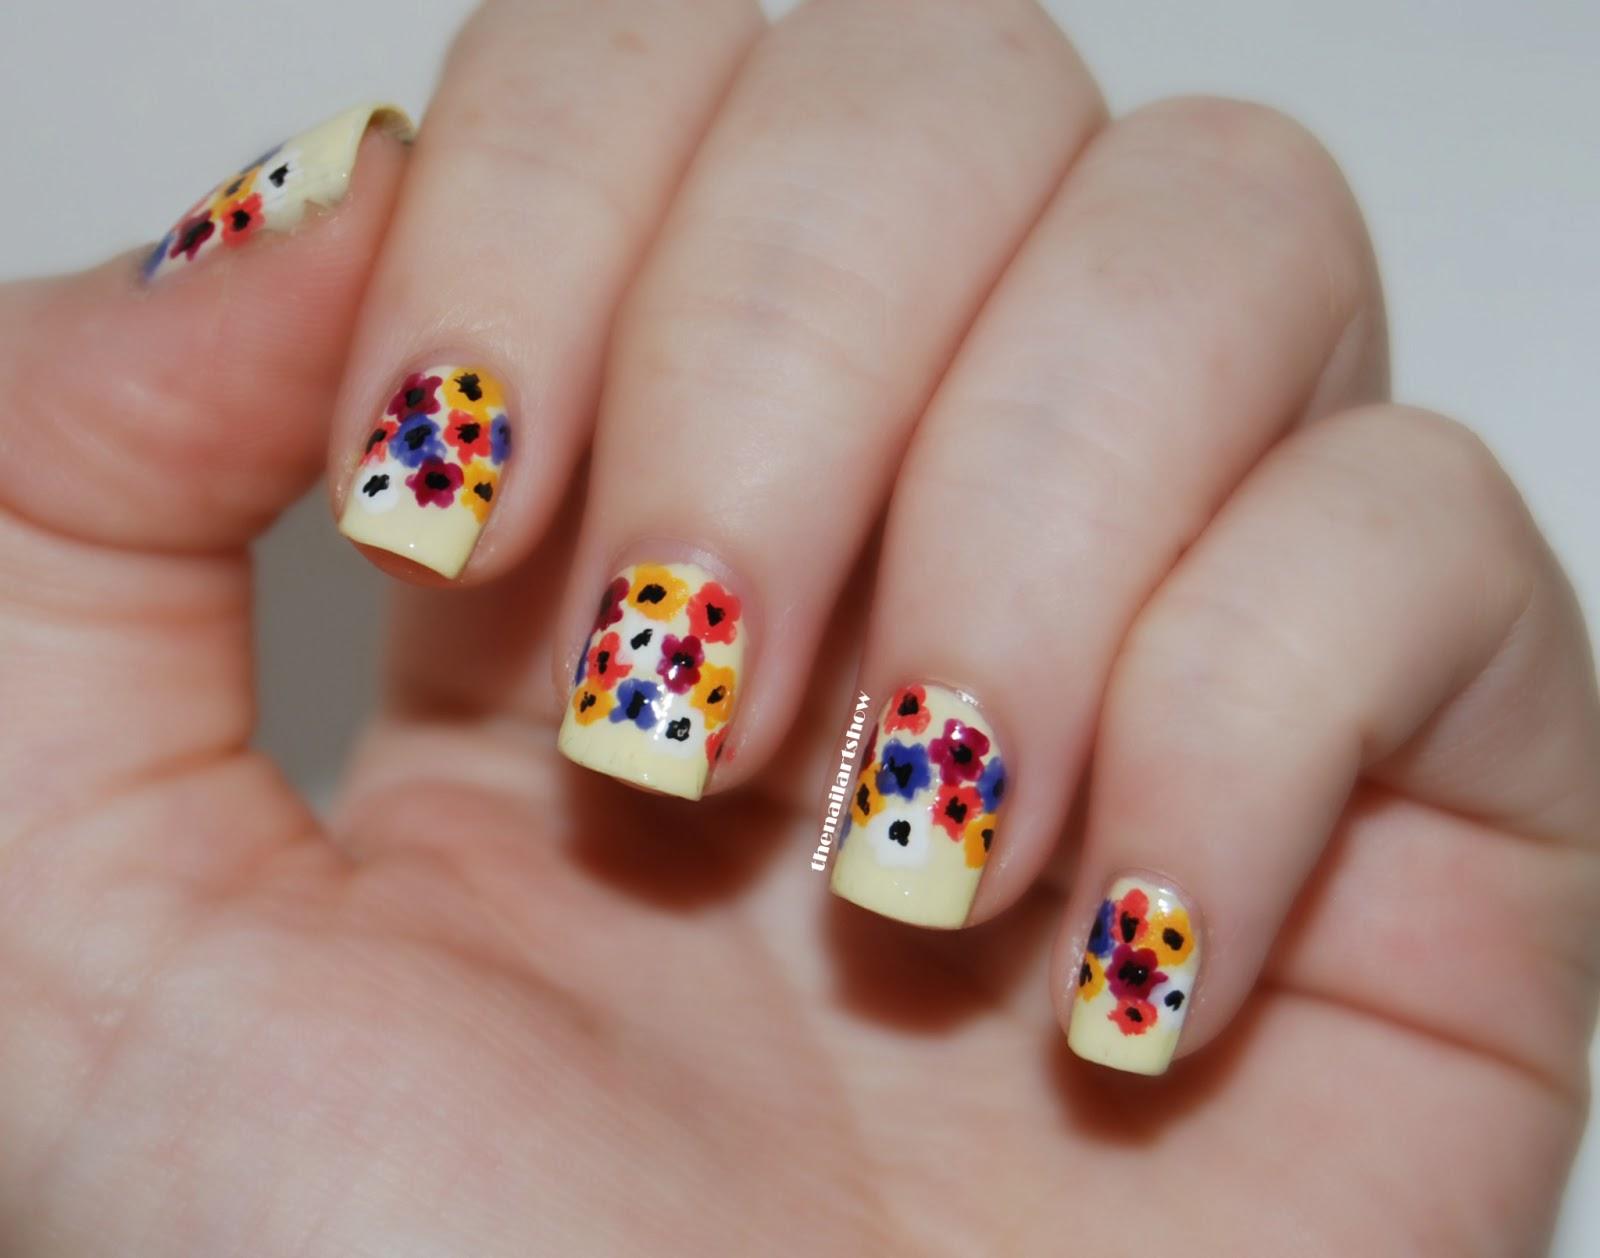 June Nail Art Challenge  Day 4: Flowers | The Nail Art Show